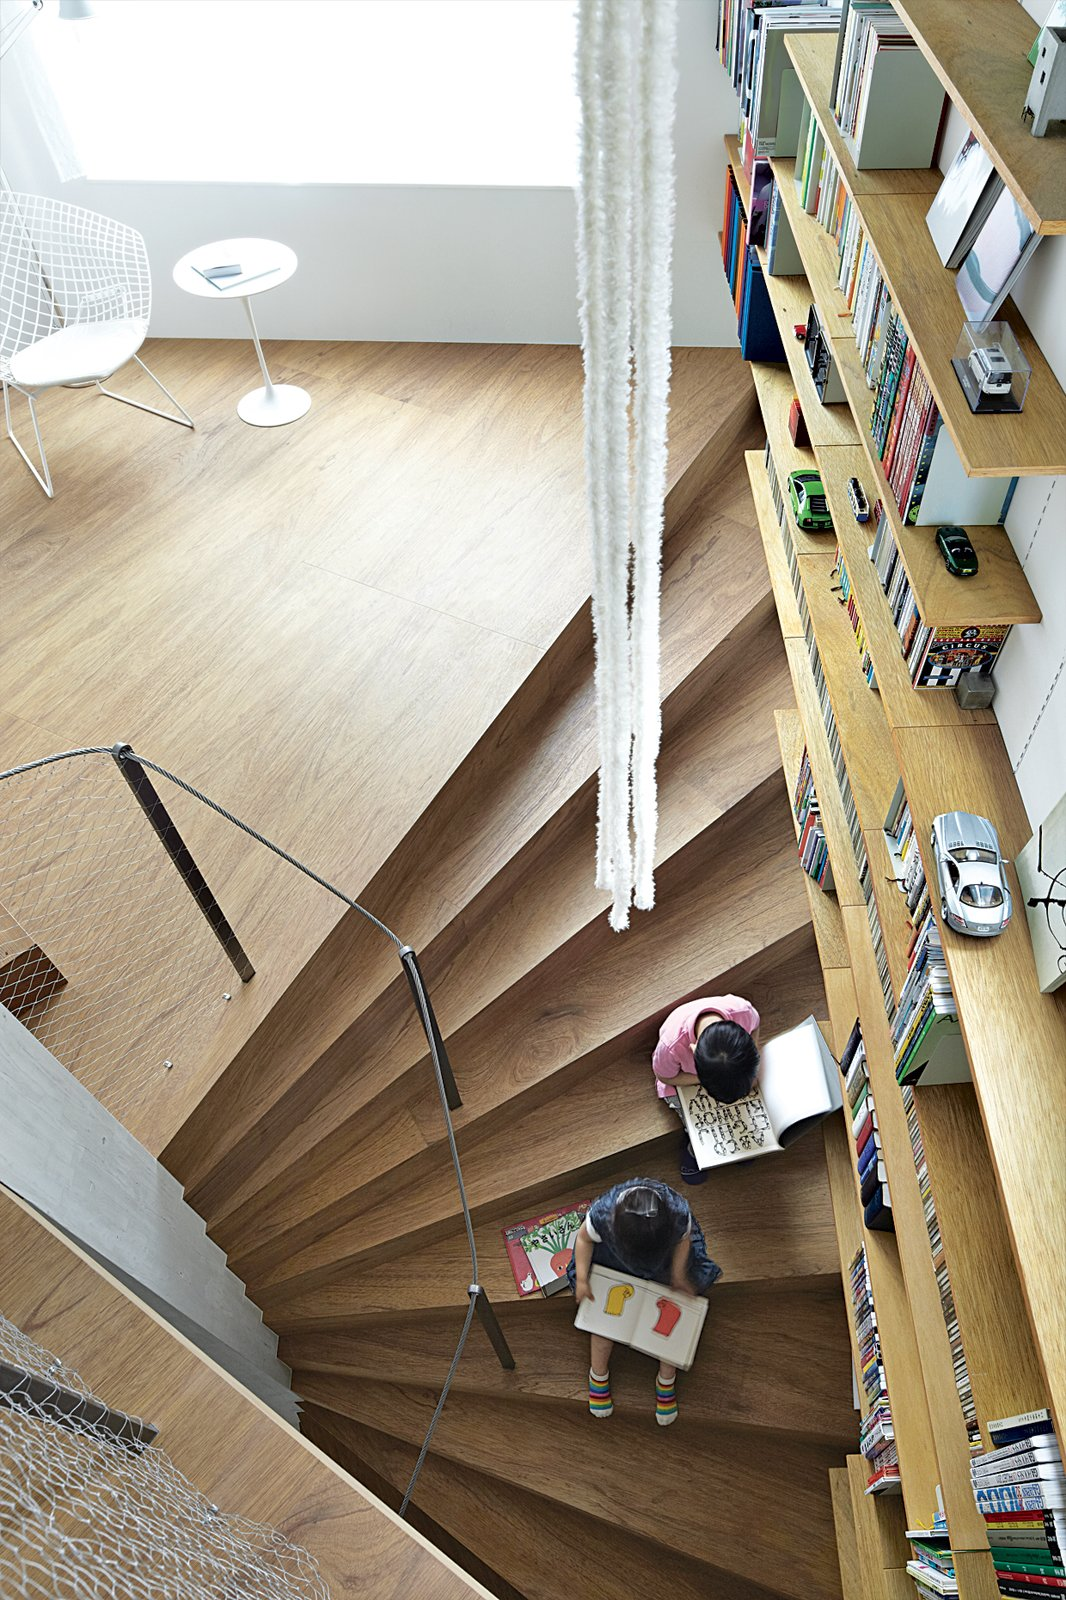 Staircase, Wood Tread, and Metal Railing Ran and her brother, Gen, read on one of the structure's 44 continuous steps.  Home Libraries that Take Book Storage to the Next Level by Diana Budds from This Sculptural Staircase Shapes an Entire Home